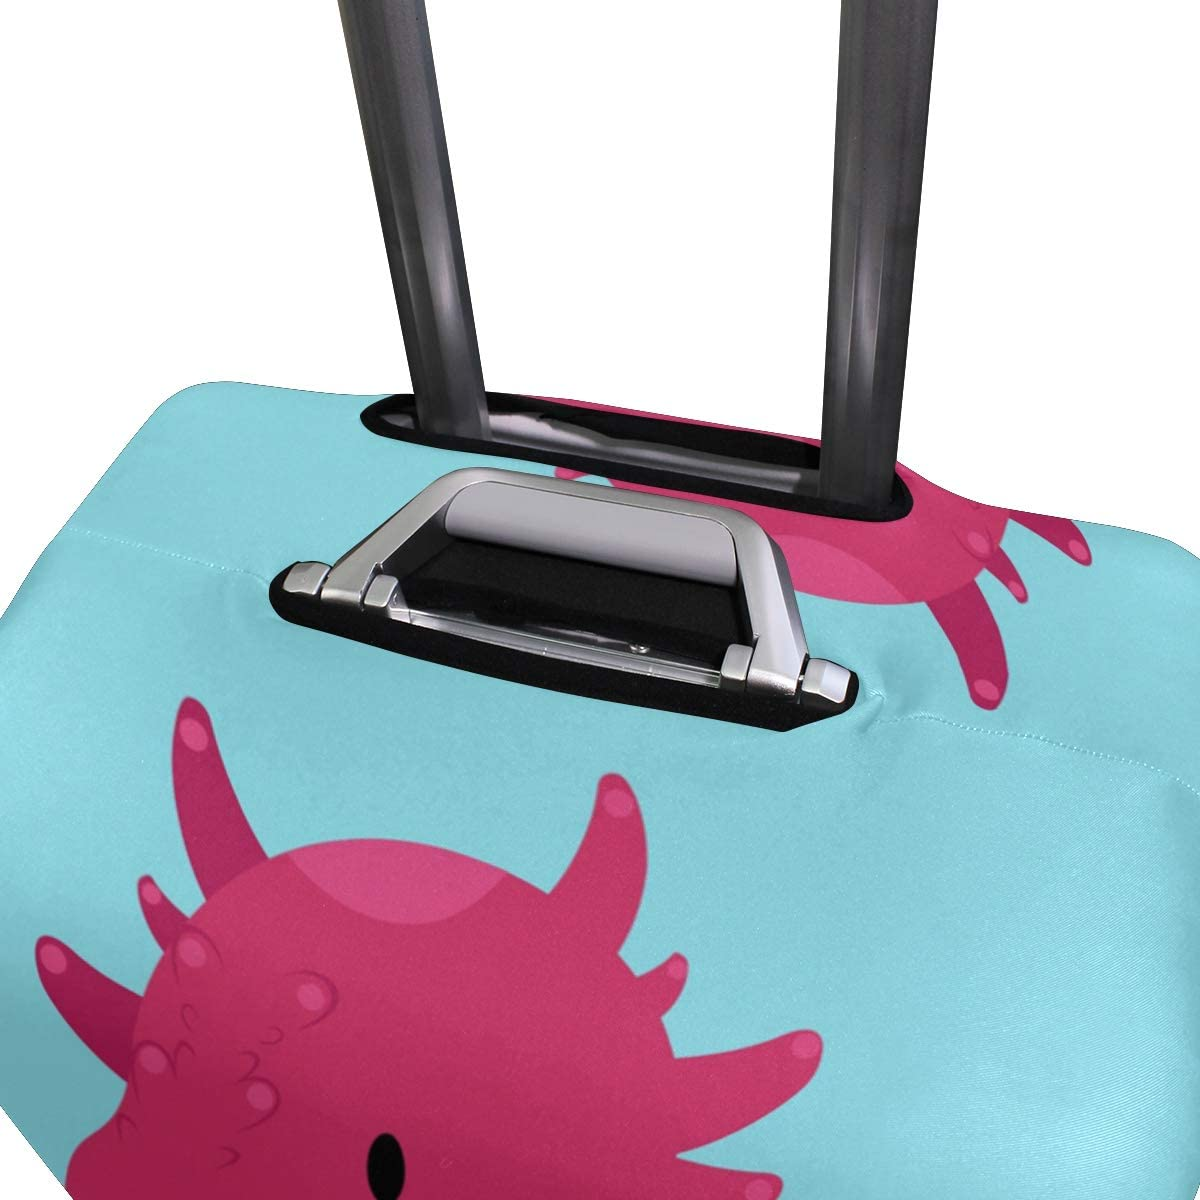 3D Cartoon Baby Dragon Print Luggage Protector Travel Luggage Cover Trolley Case Protective Cover Fits 18-32 Inch